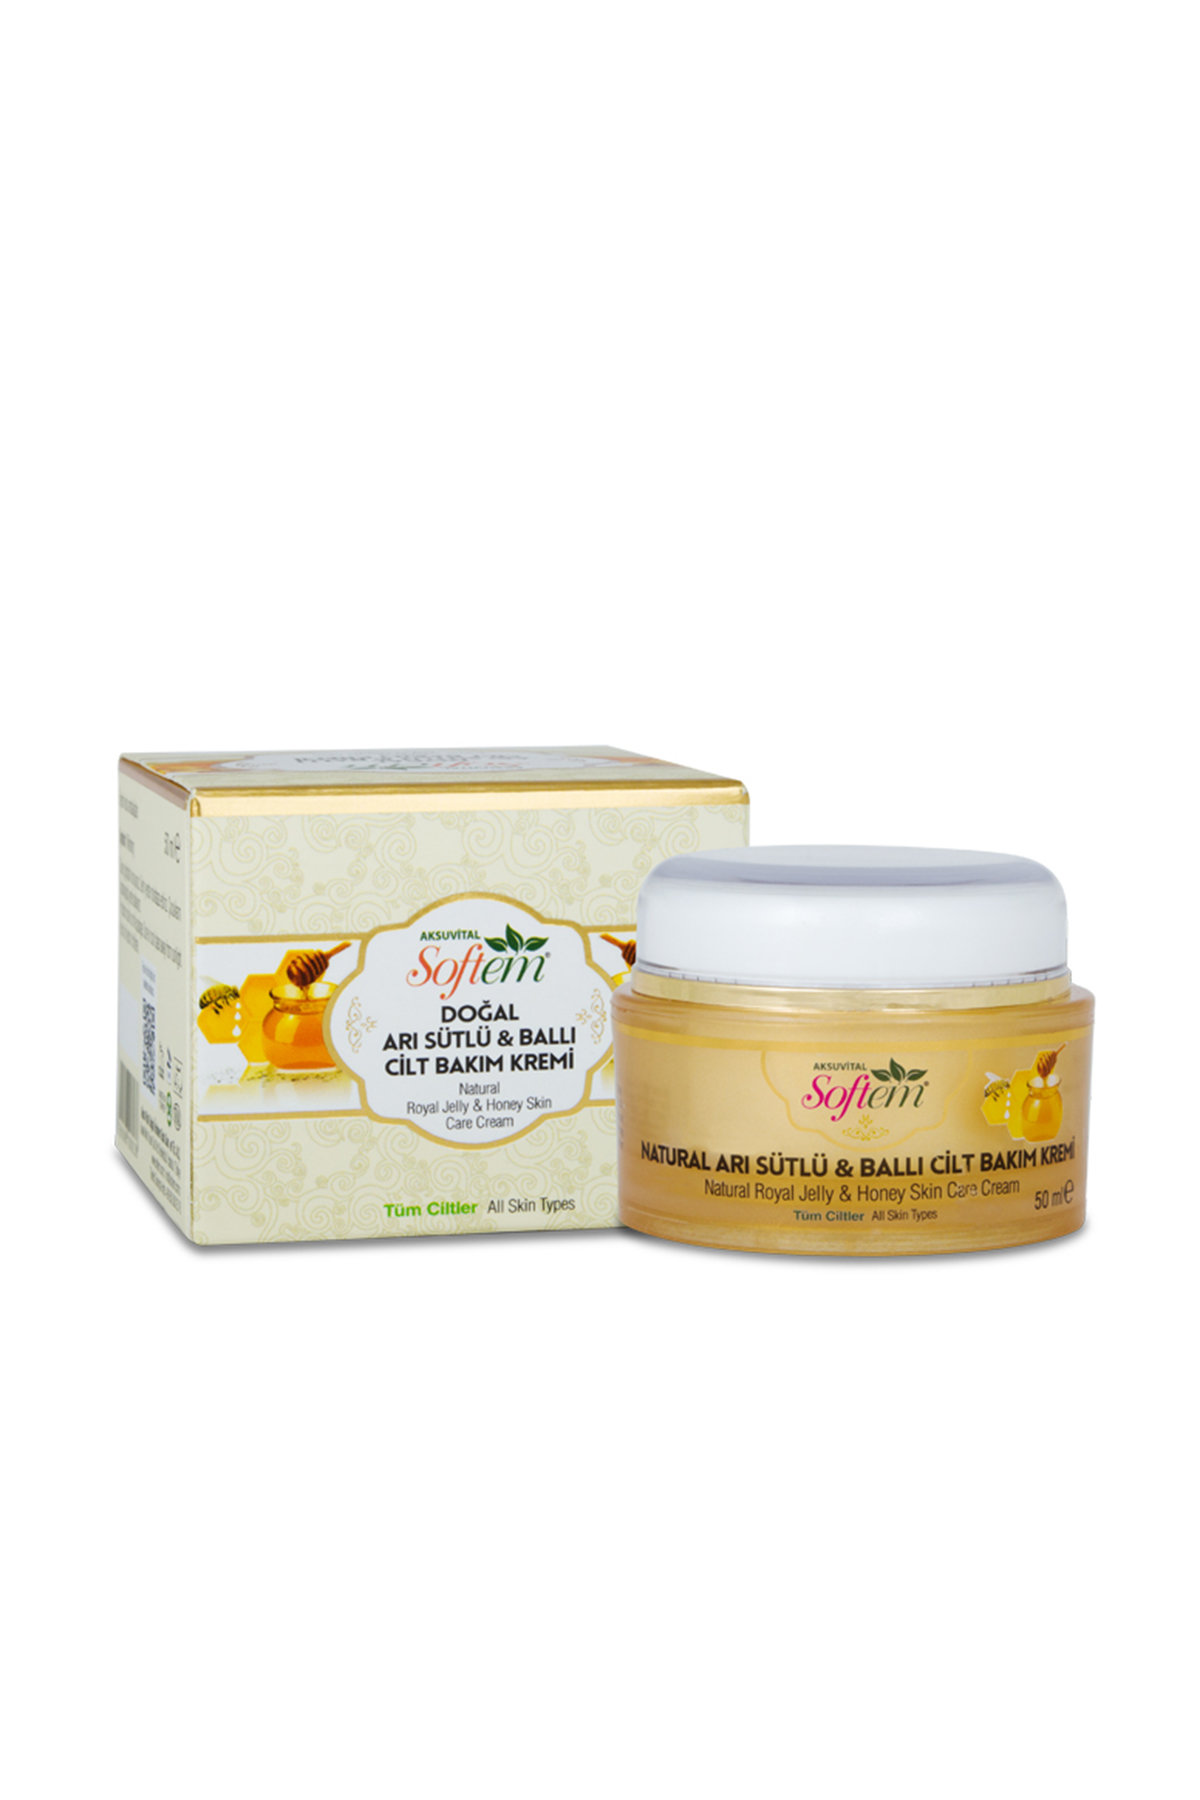 Natural royal jelly & honey skin care cream